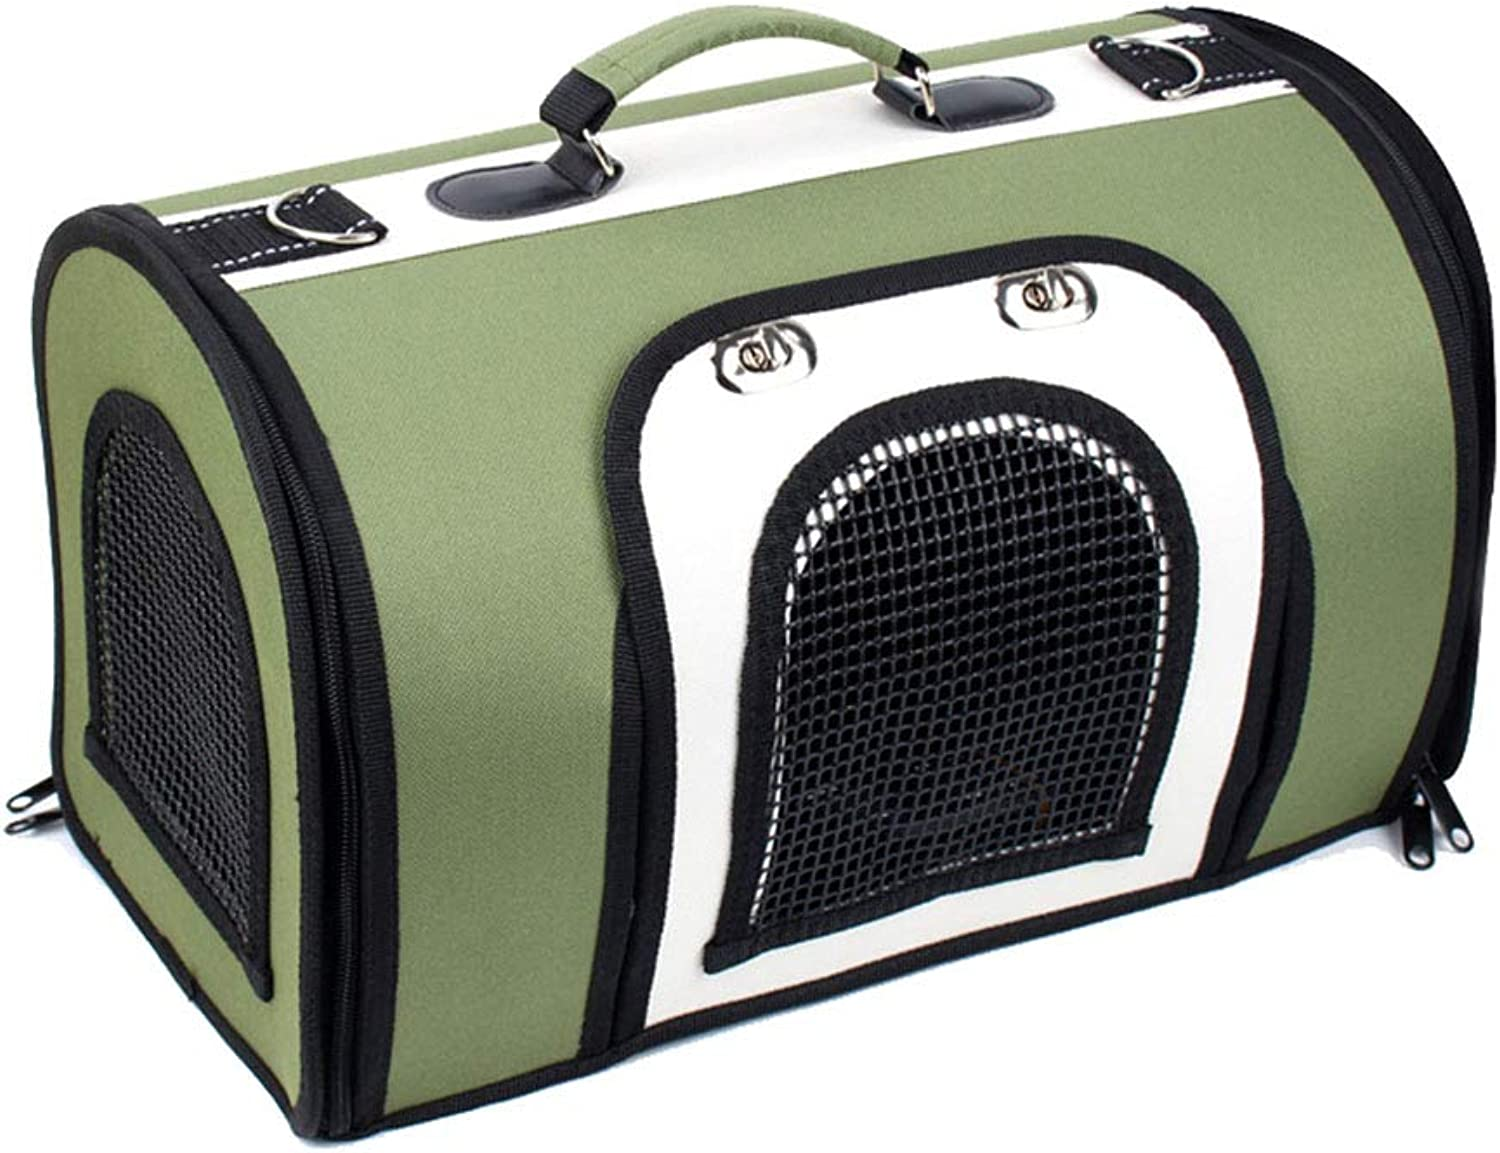 NIANXINAN Pet Carrier One Shoulder Portable Travel Bag For Puppy Dogs Cats, Breathable